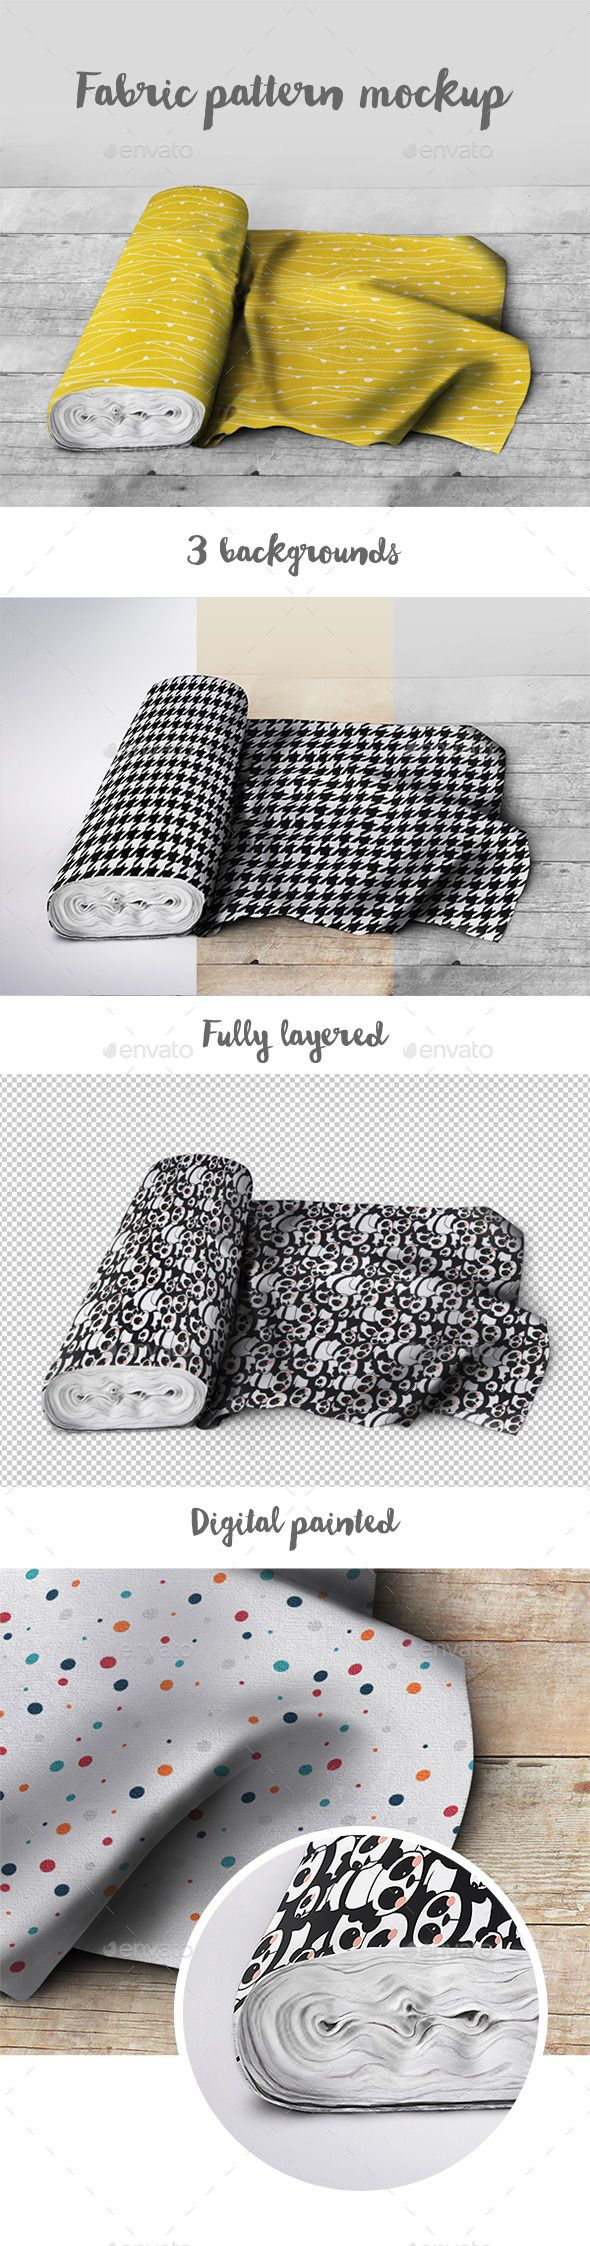 Photorealistic, digitally painted fabric pattern mockup. Perfect way to present your textile design.  - 3000×2019 px - 300 dpi - 3 backgrounds (color wood, b&w wood, gray studio background) - digitally painted - Smart Objects - easy to edit - instruction included - fully layered - transparent background.